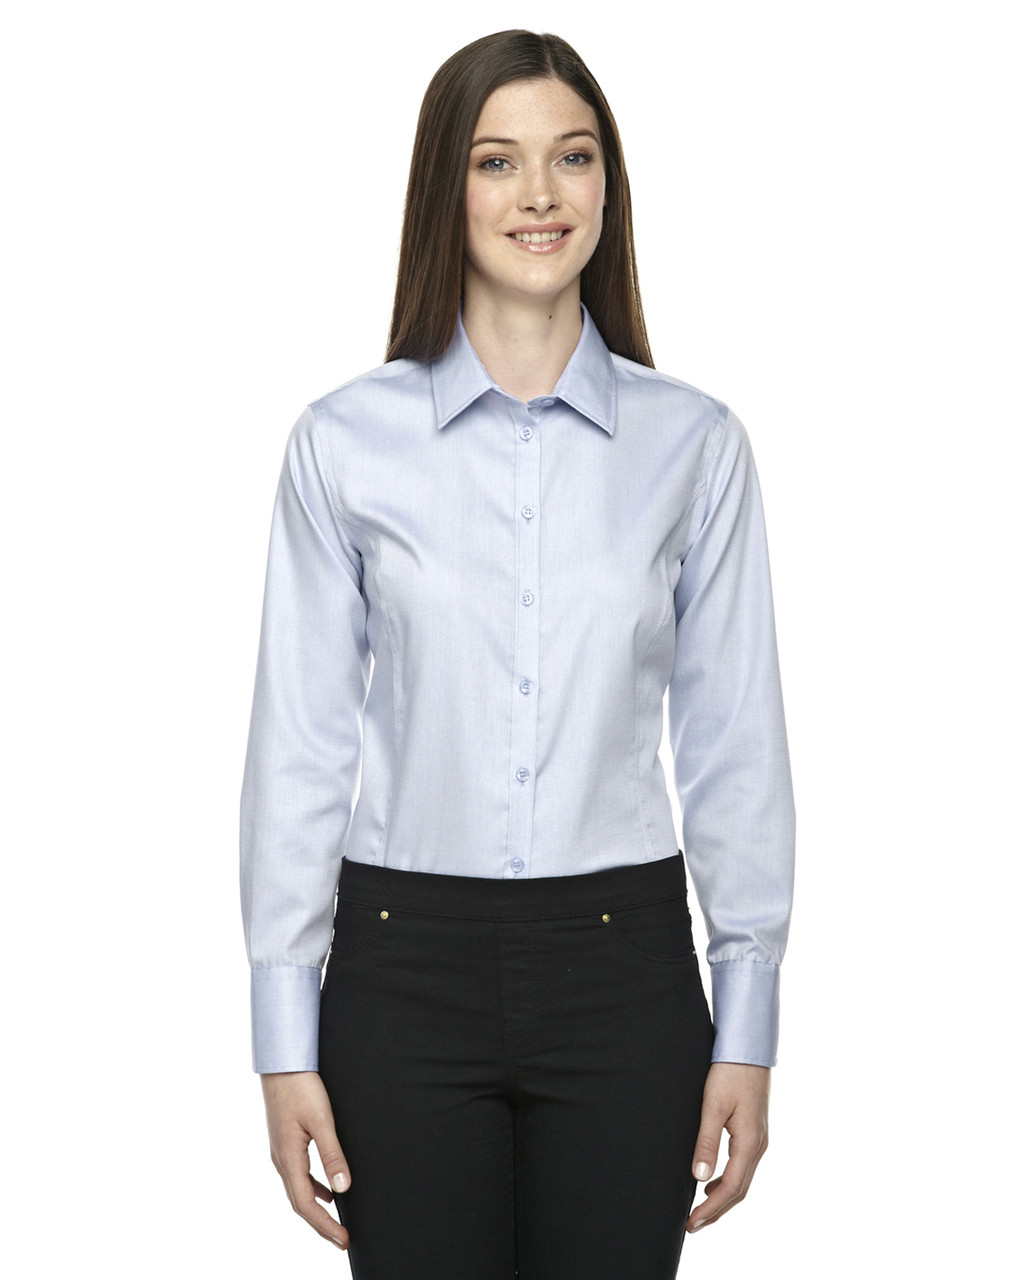 Cool Blue - 78673 North End Sport Blue Boulevard Wrinkle-Free Cotton Dobby Taped Shirt with Oxford Twill | Blankclothing.ca